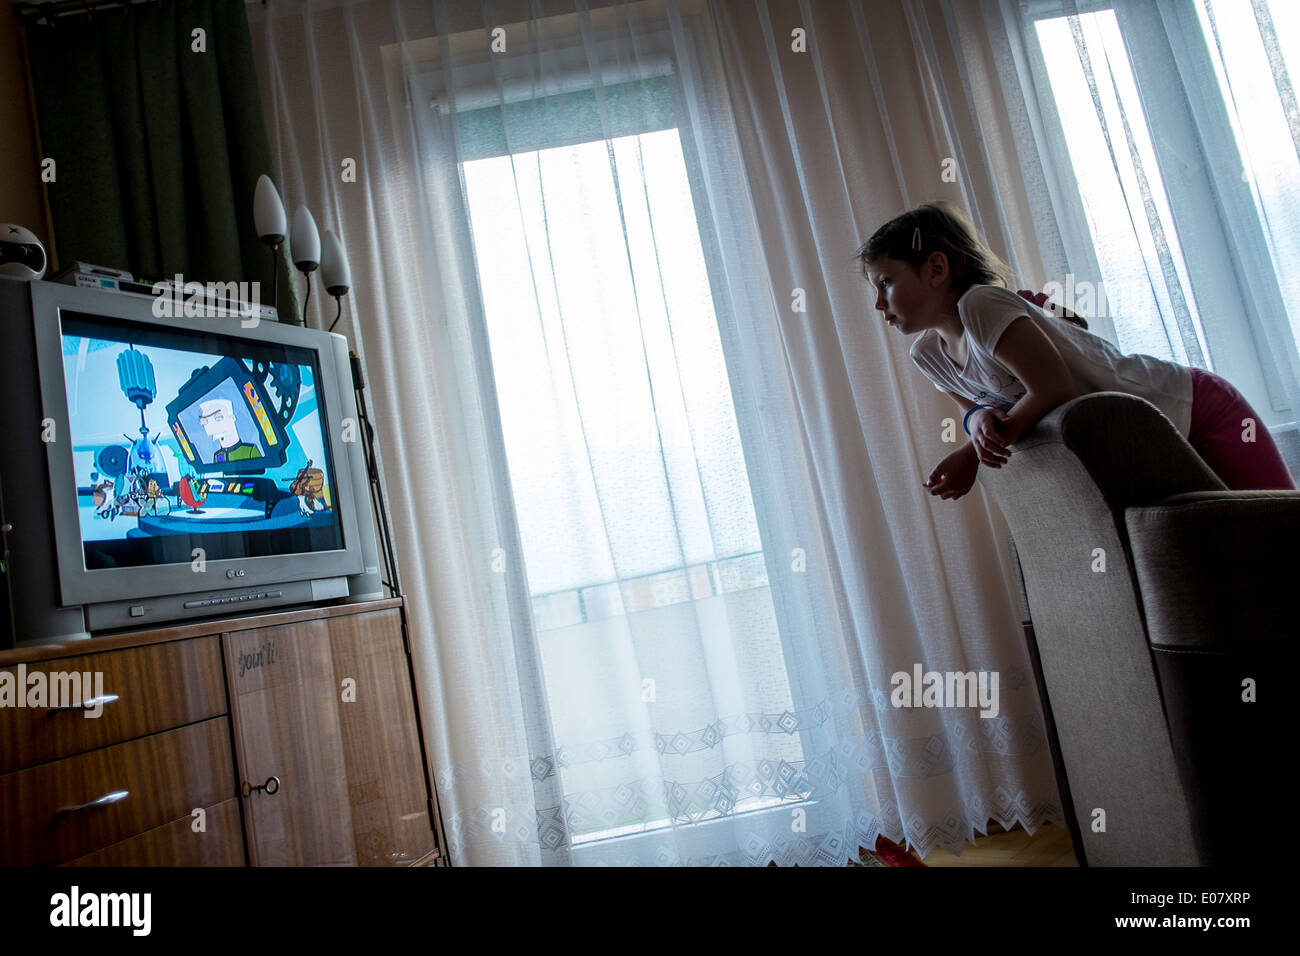 Gir age 5,6,7 at home watching TV, Starachowice, Poland - Stock Image